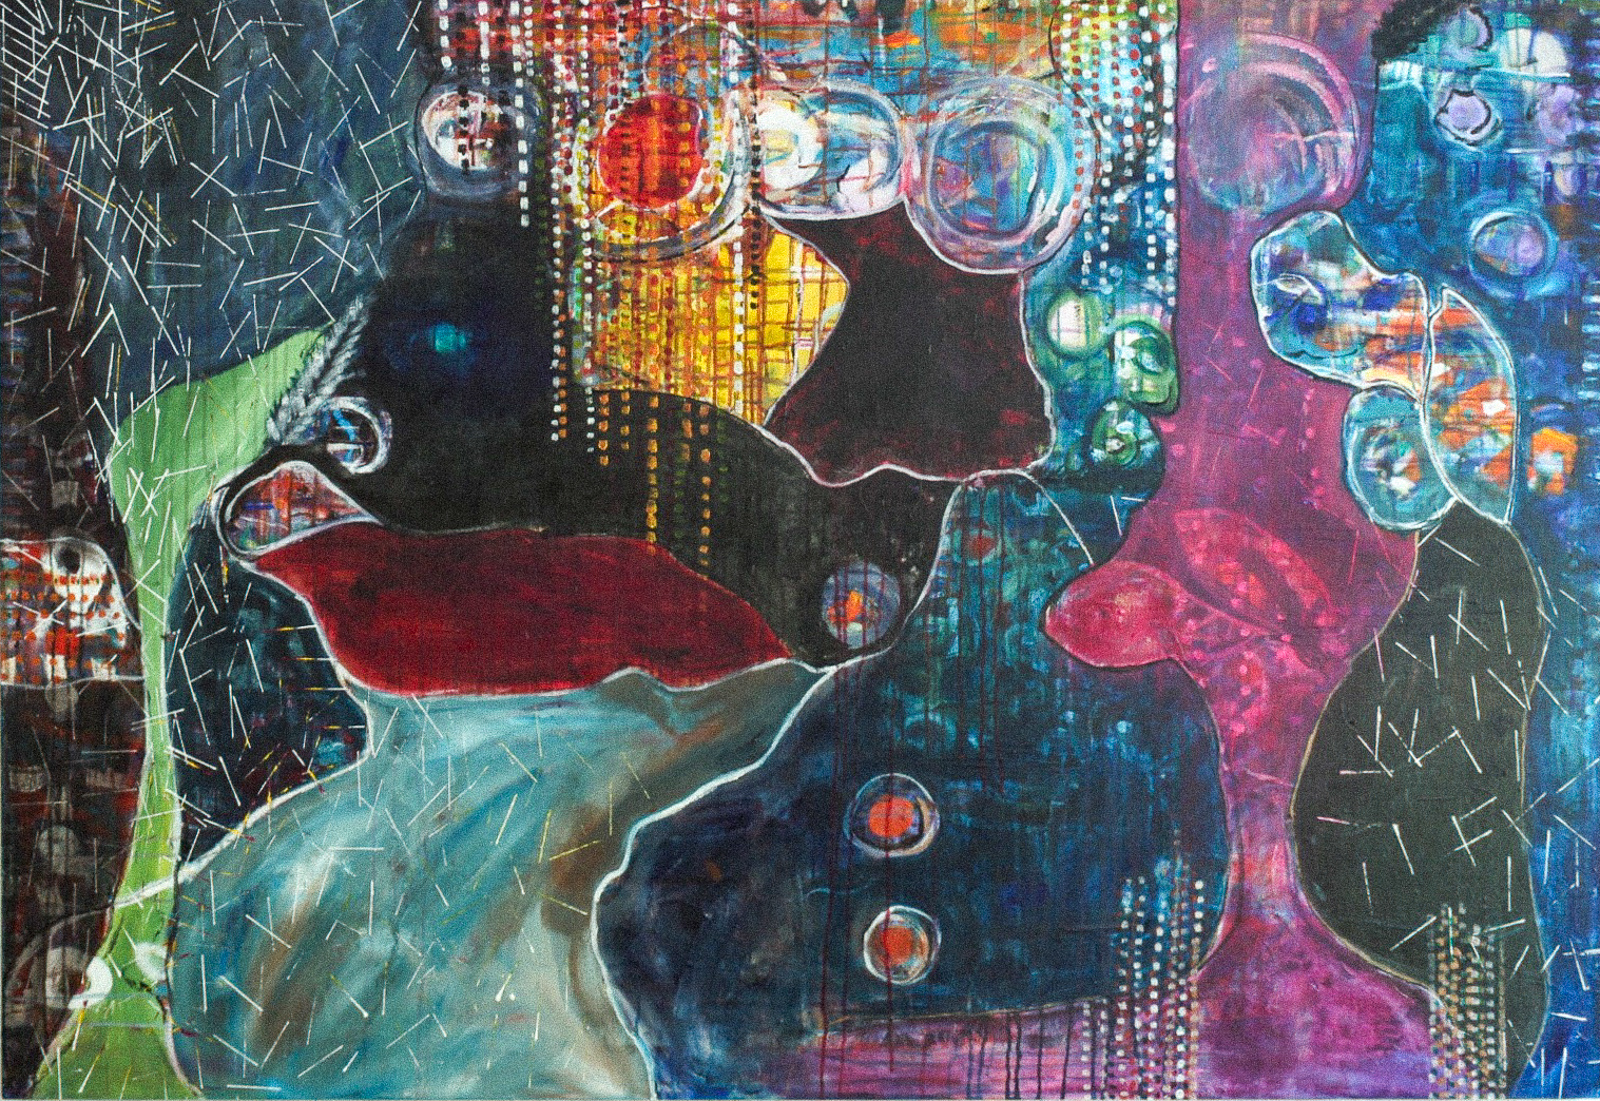 Abstract painting with bold bubbles of color (dark blues and deep reds) with streams of bubbles falling down from the top